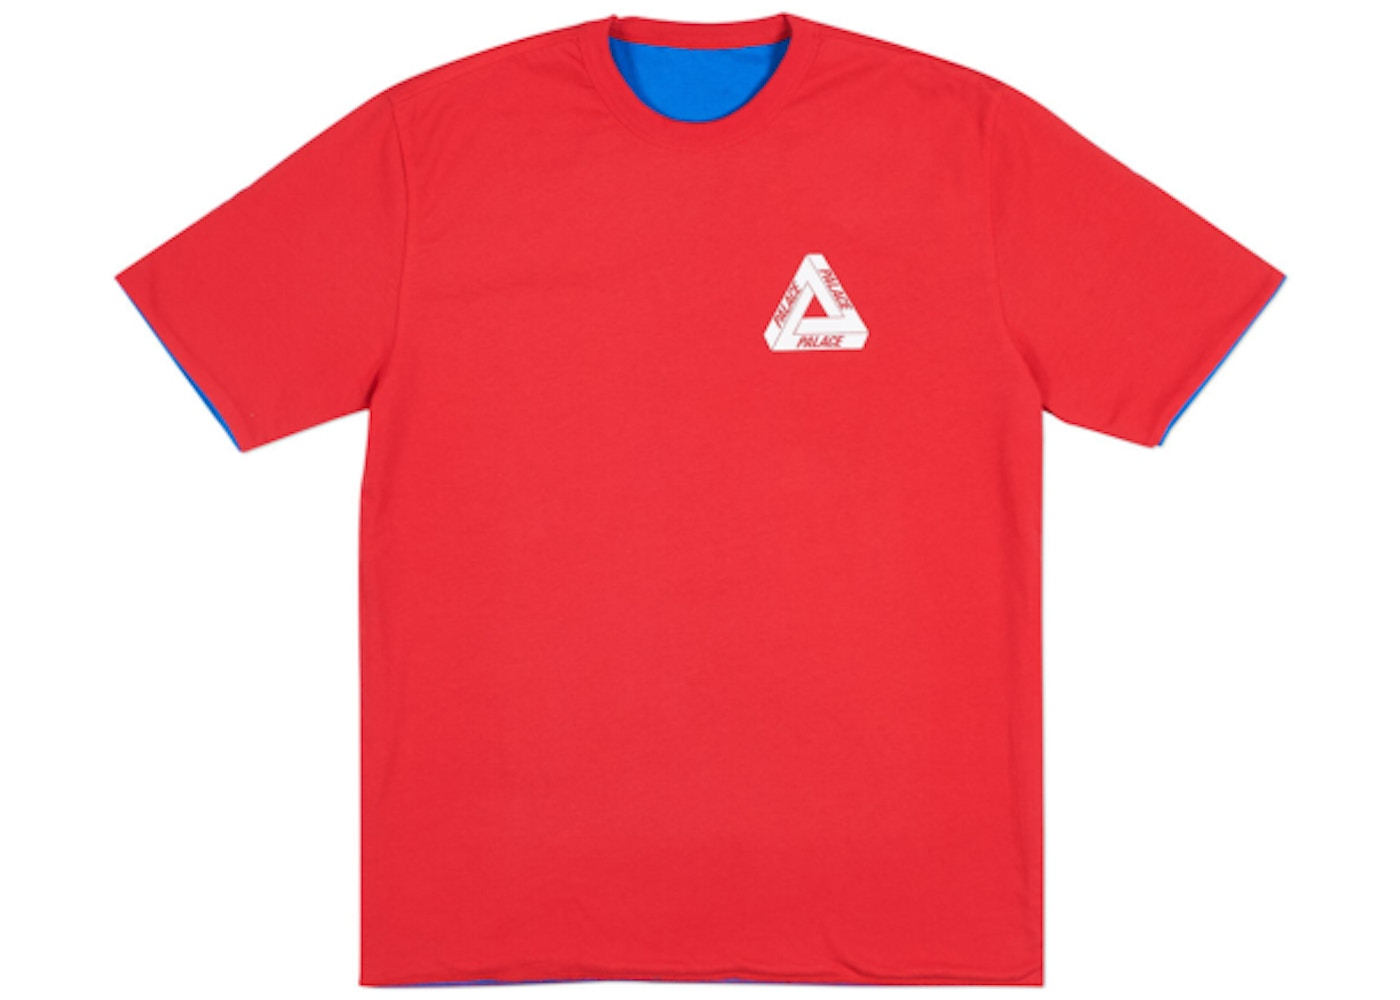 50ab5ccfef0e Palace Reverso T-Shirt Red Blue - SS18